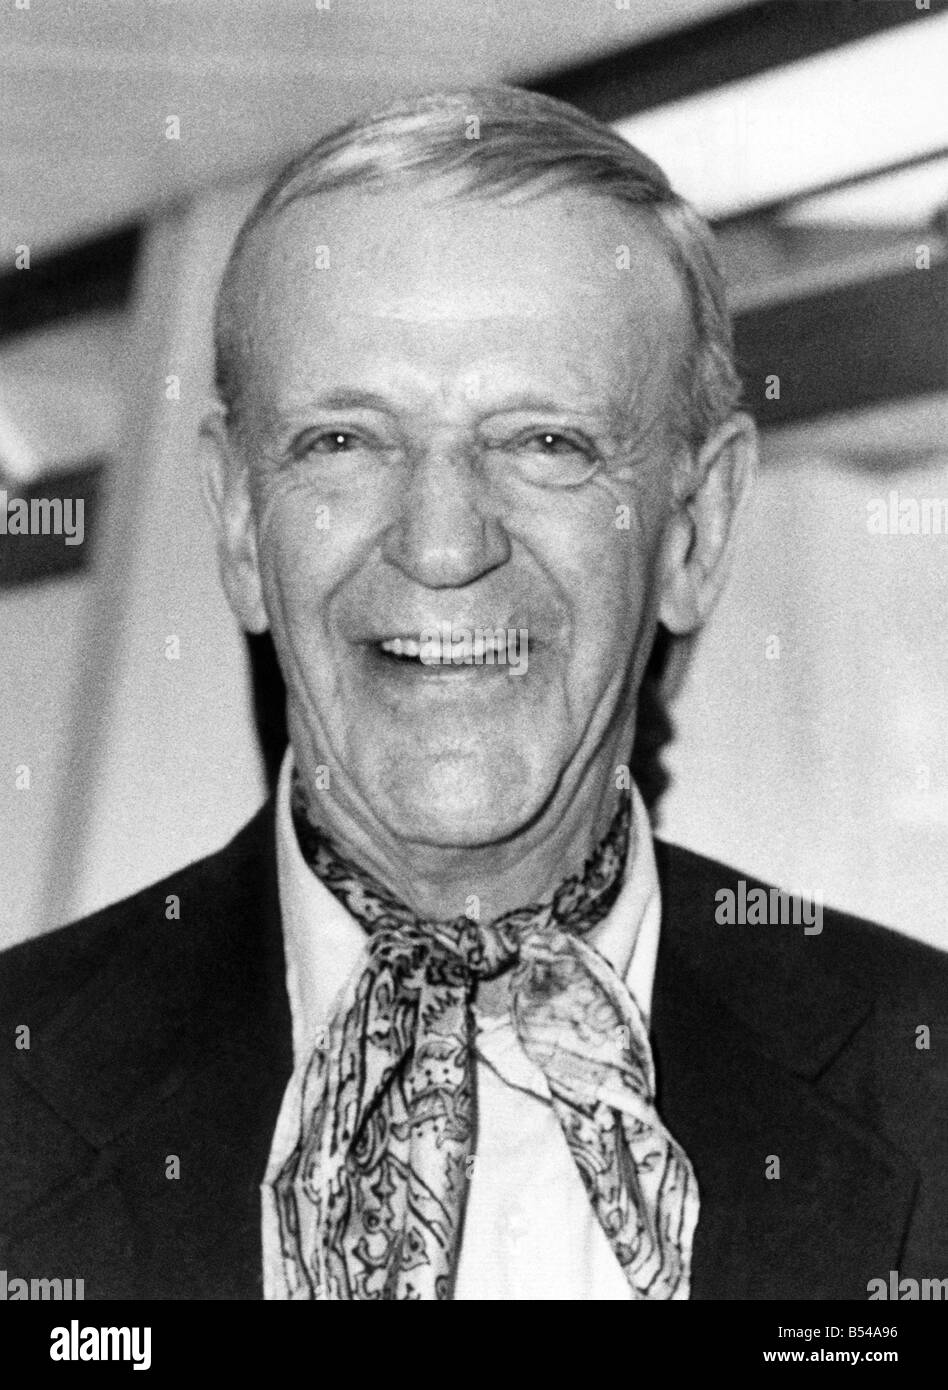 fred astaire wiki